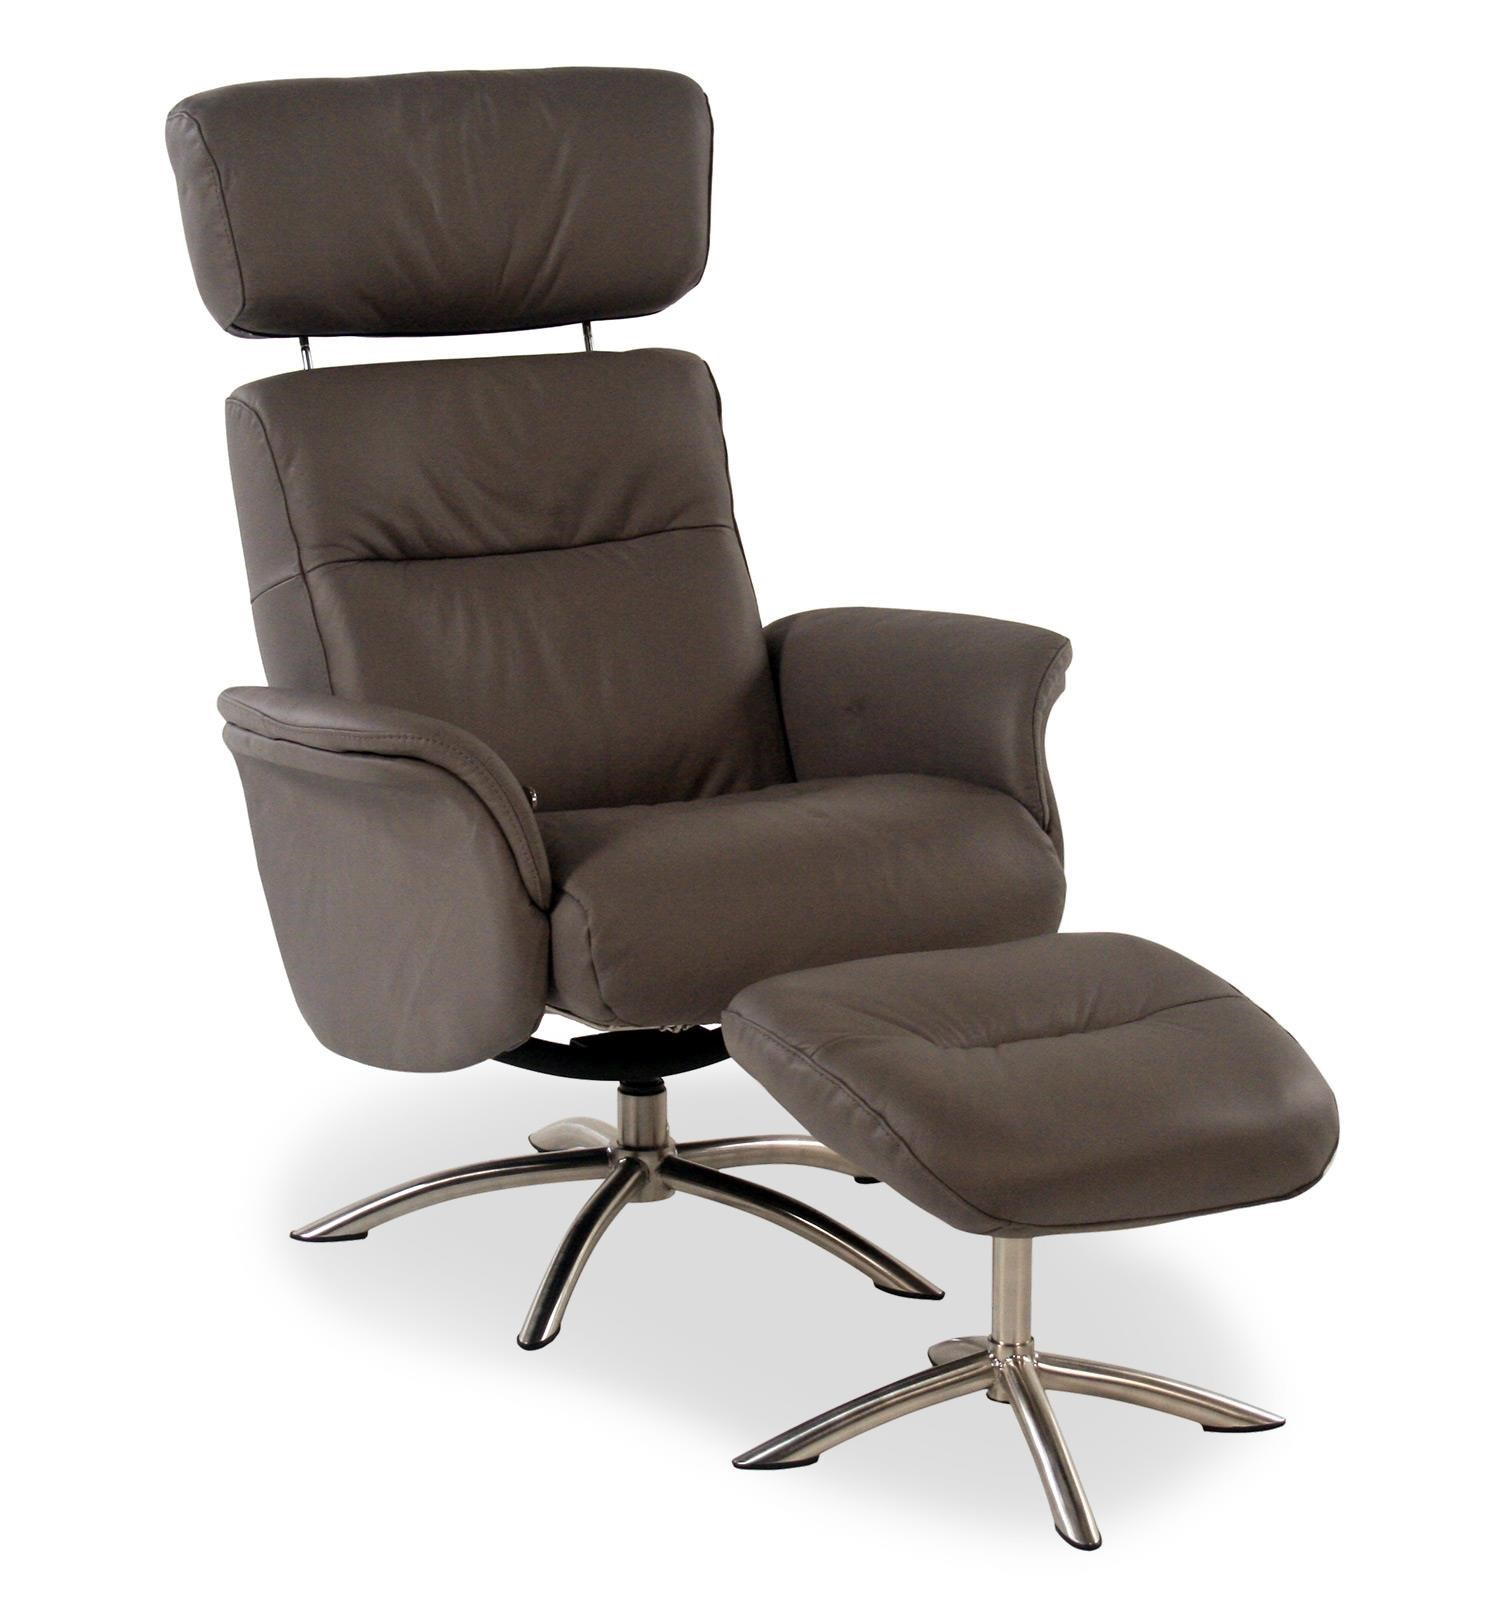 Superb Palliser QuantumLeather Reclining Chair And Ottoman